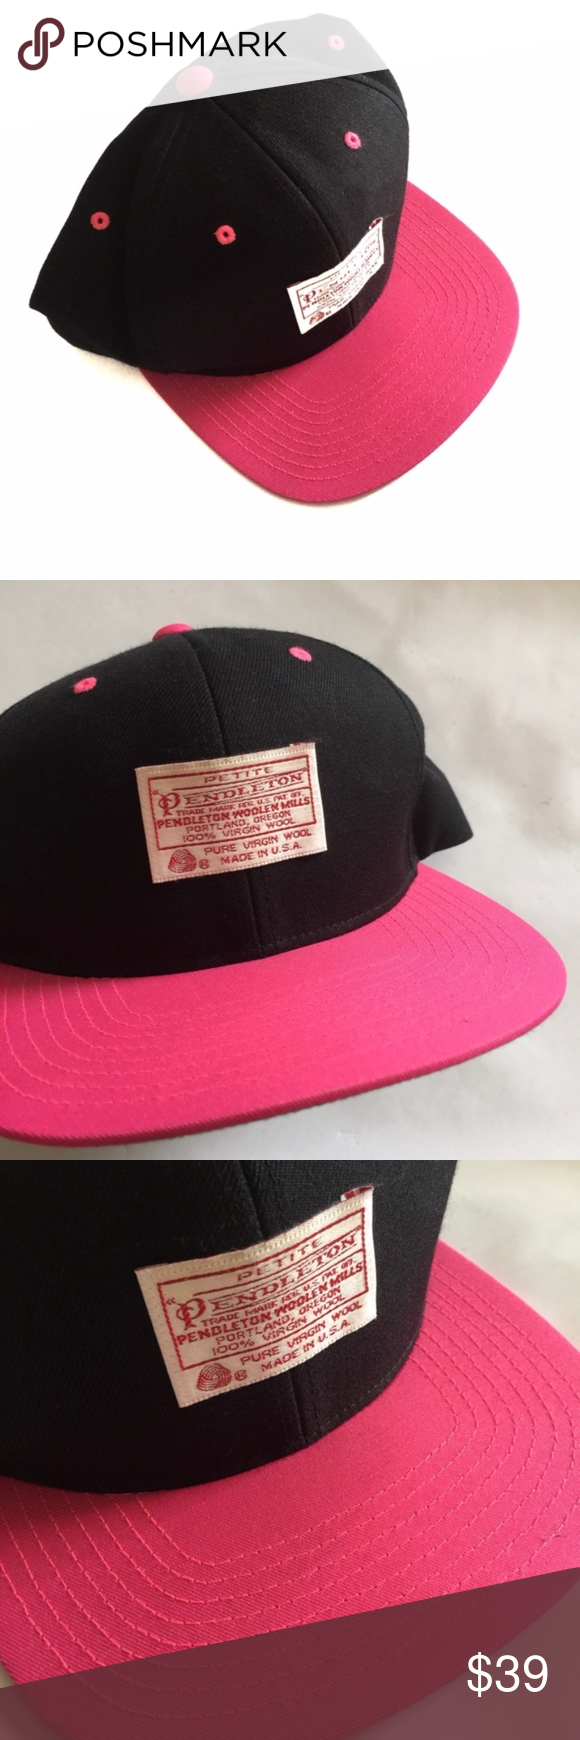 Pendleton Black Pink Grey Snap Back Trucker Hat Pendleton Black Pink Grey Snap Back Trucker Hat, excellent condition. Black with pink rim, green underside. Logo patch on front. Adjustable snap back. Pendleton Accessories Hats #pinkrims Pendleton Black Pink Grey Snap Back Trucker Hat Pendleton Black Pink Grey Snap Back Trucker Hat, excellent condition. Black with pink rim, green underside. Logo patch on front. Adjustable snap back. Pendleton Accessories Hats #pinkrims